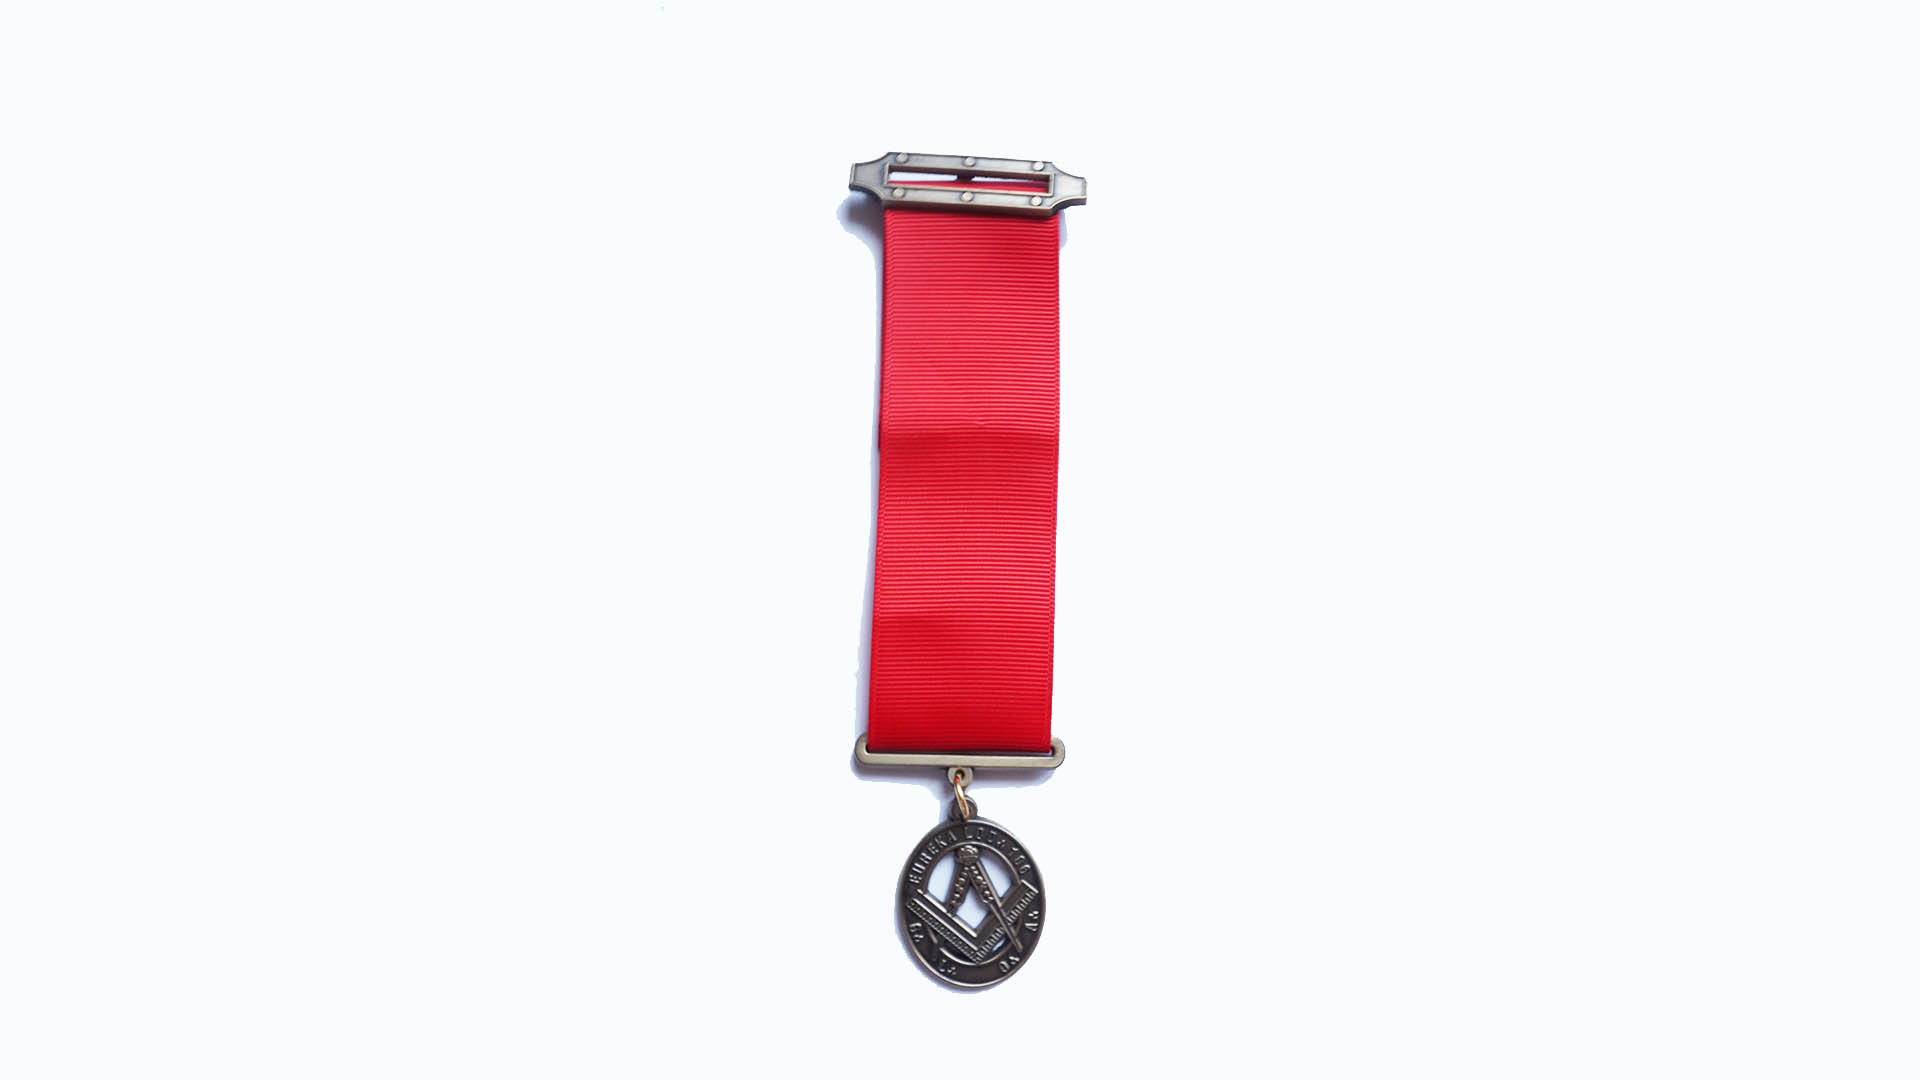 silver medal with red band